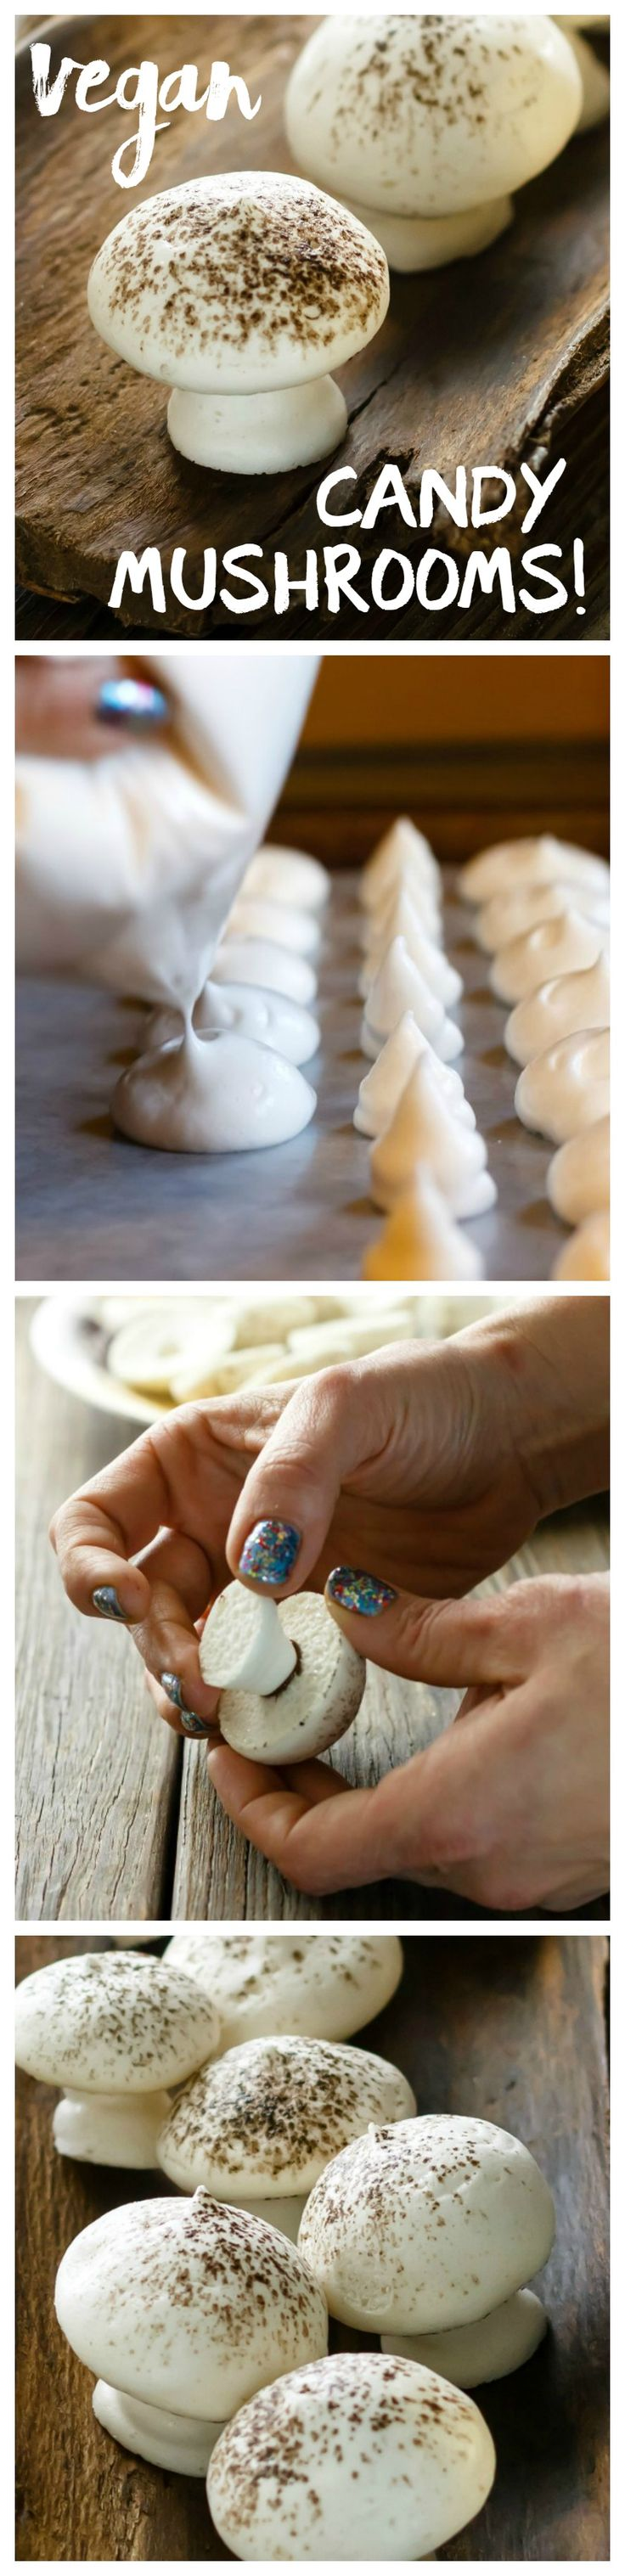 Aquafaba Meringue Mushrooms are cute, delicious candies! Vegan and gluten free. Step-by-step instructions plus tips to help you make perfect Aquafaba creations!